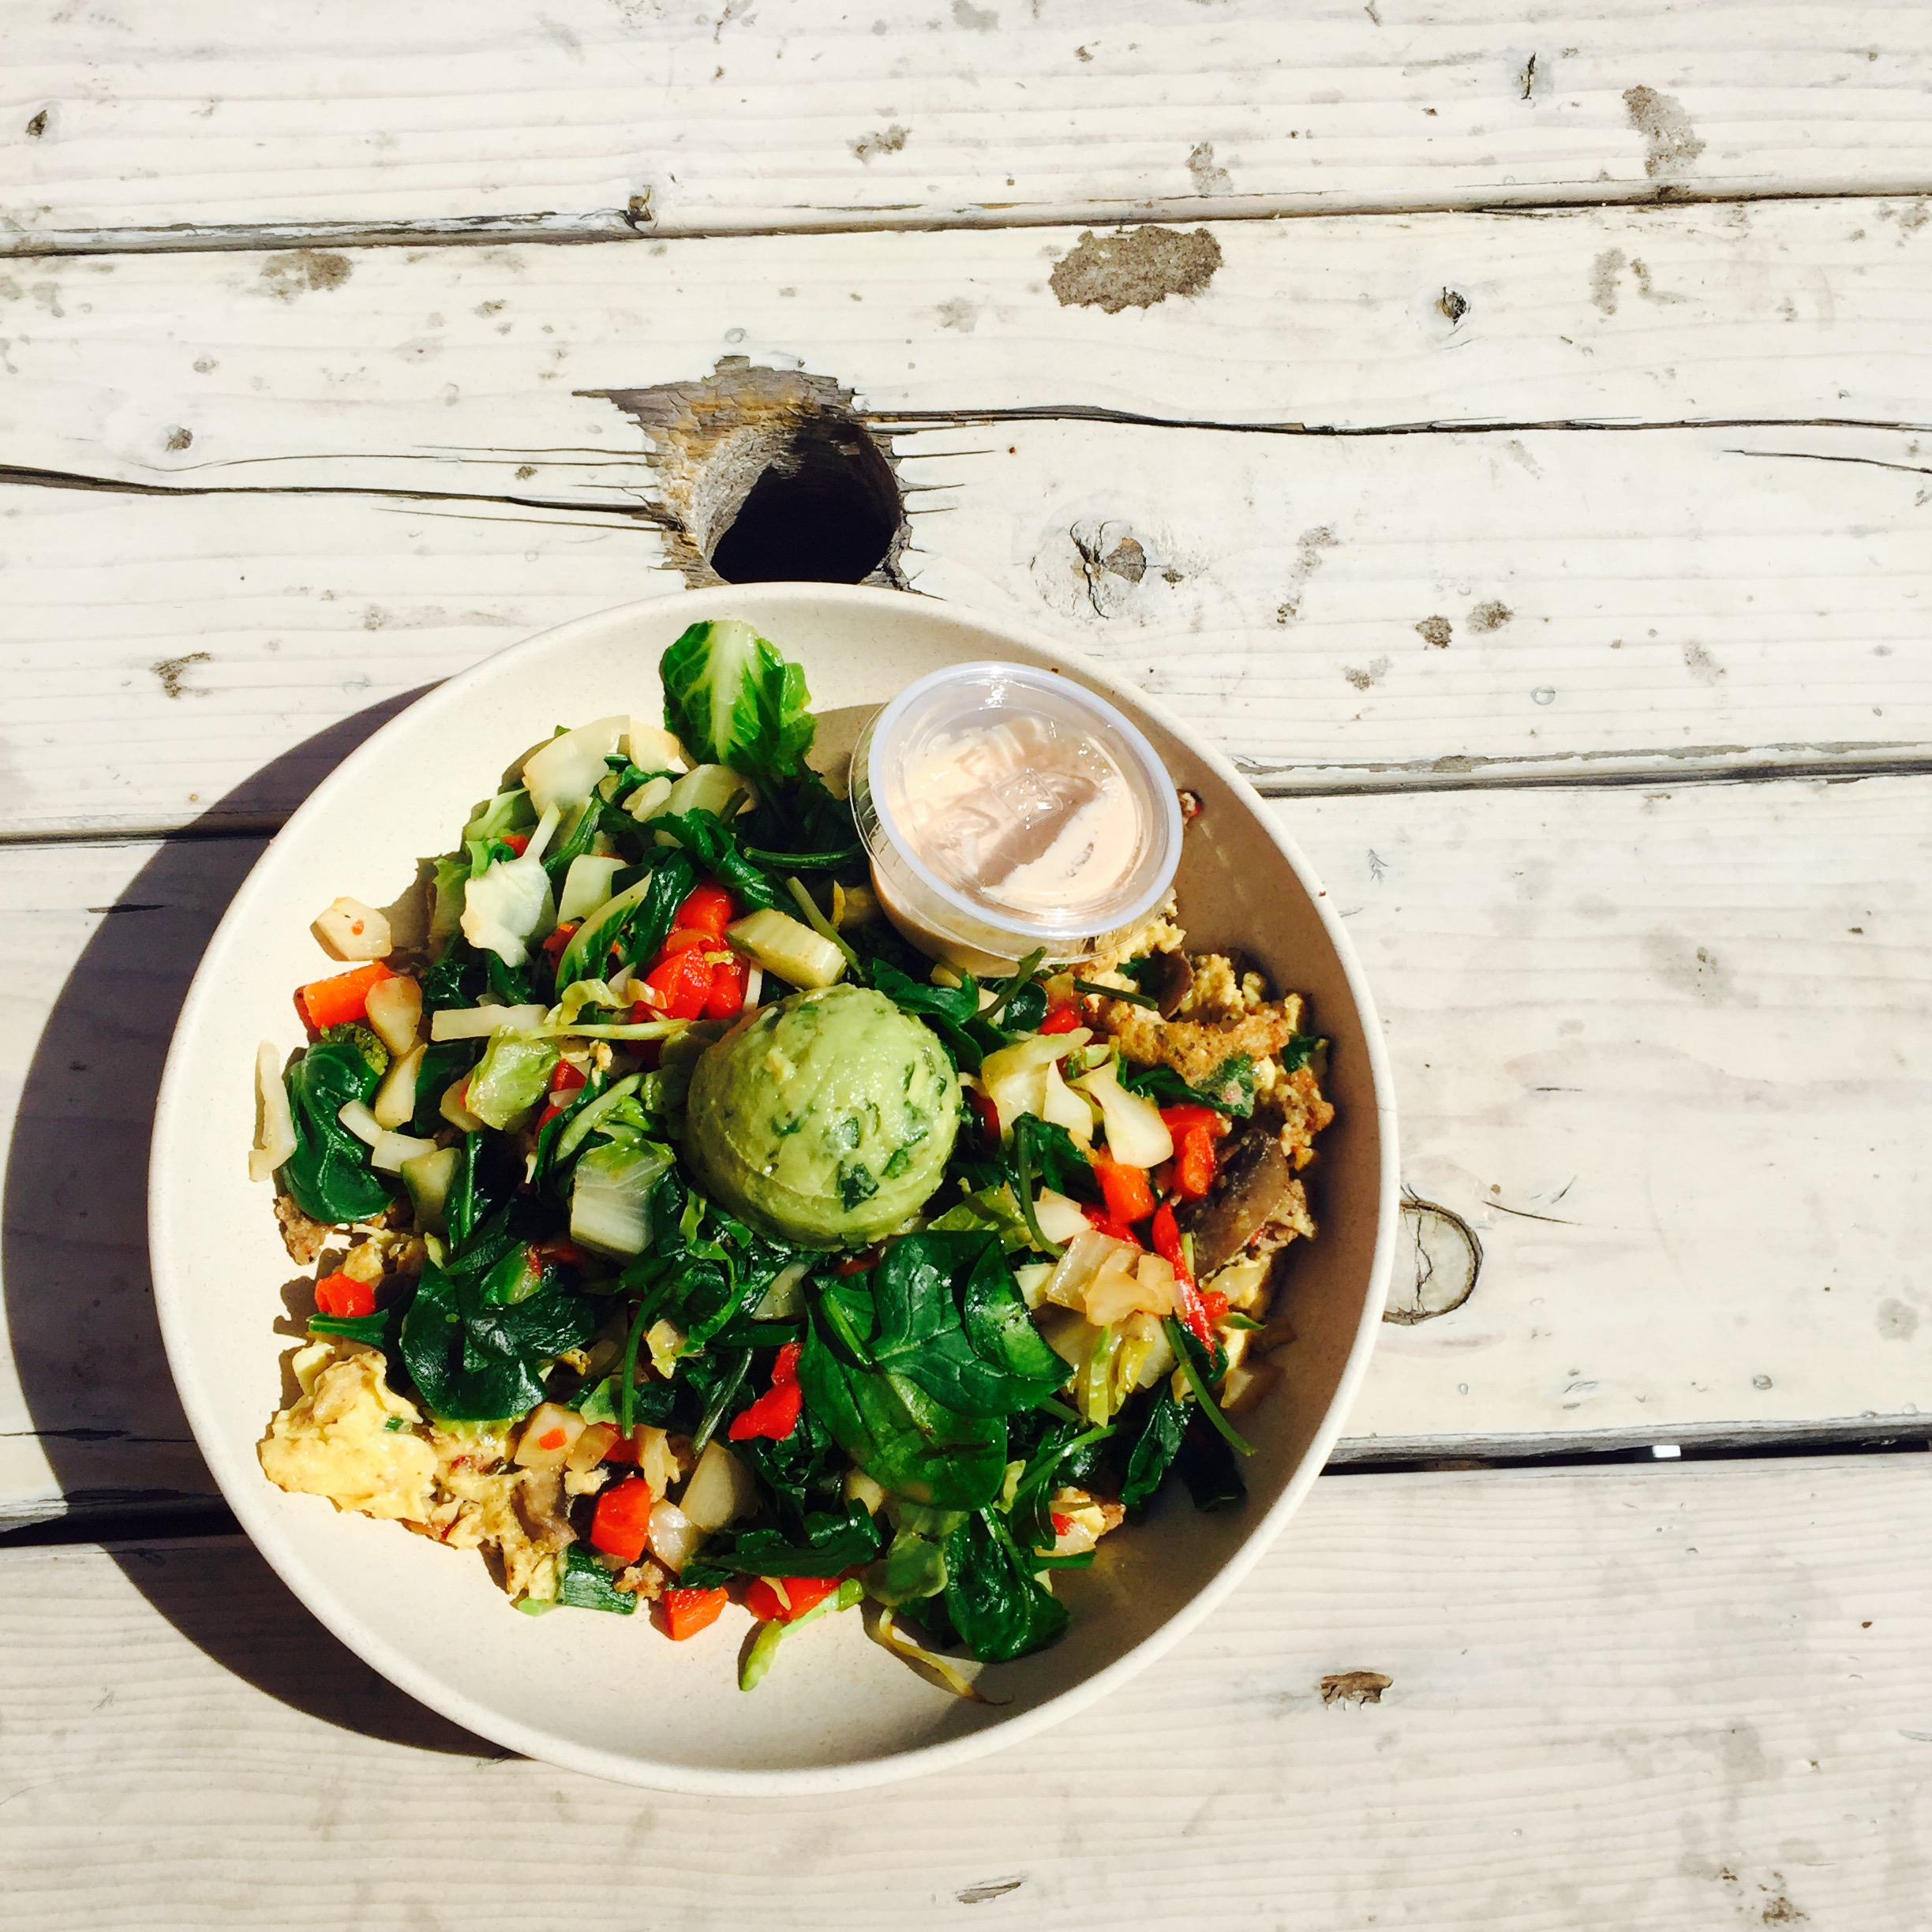 The Morning Bowl | Eggs + Spinach + Kale + Sausage + Onion + Fennel + Veggies + Guac + Spicy Chipotle Sauce